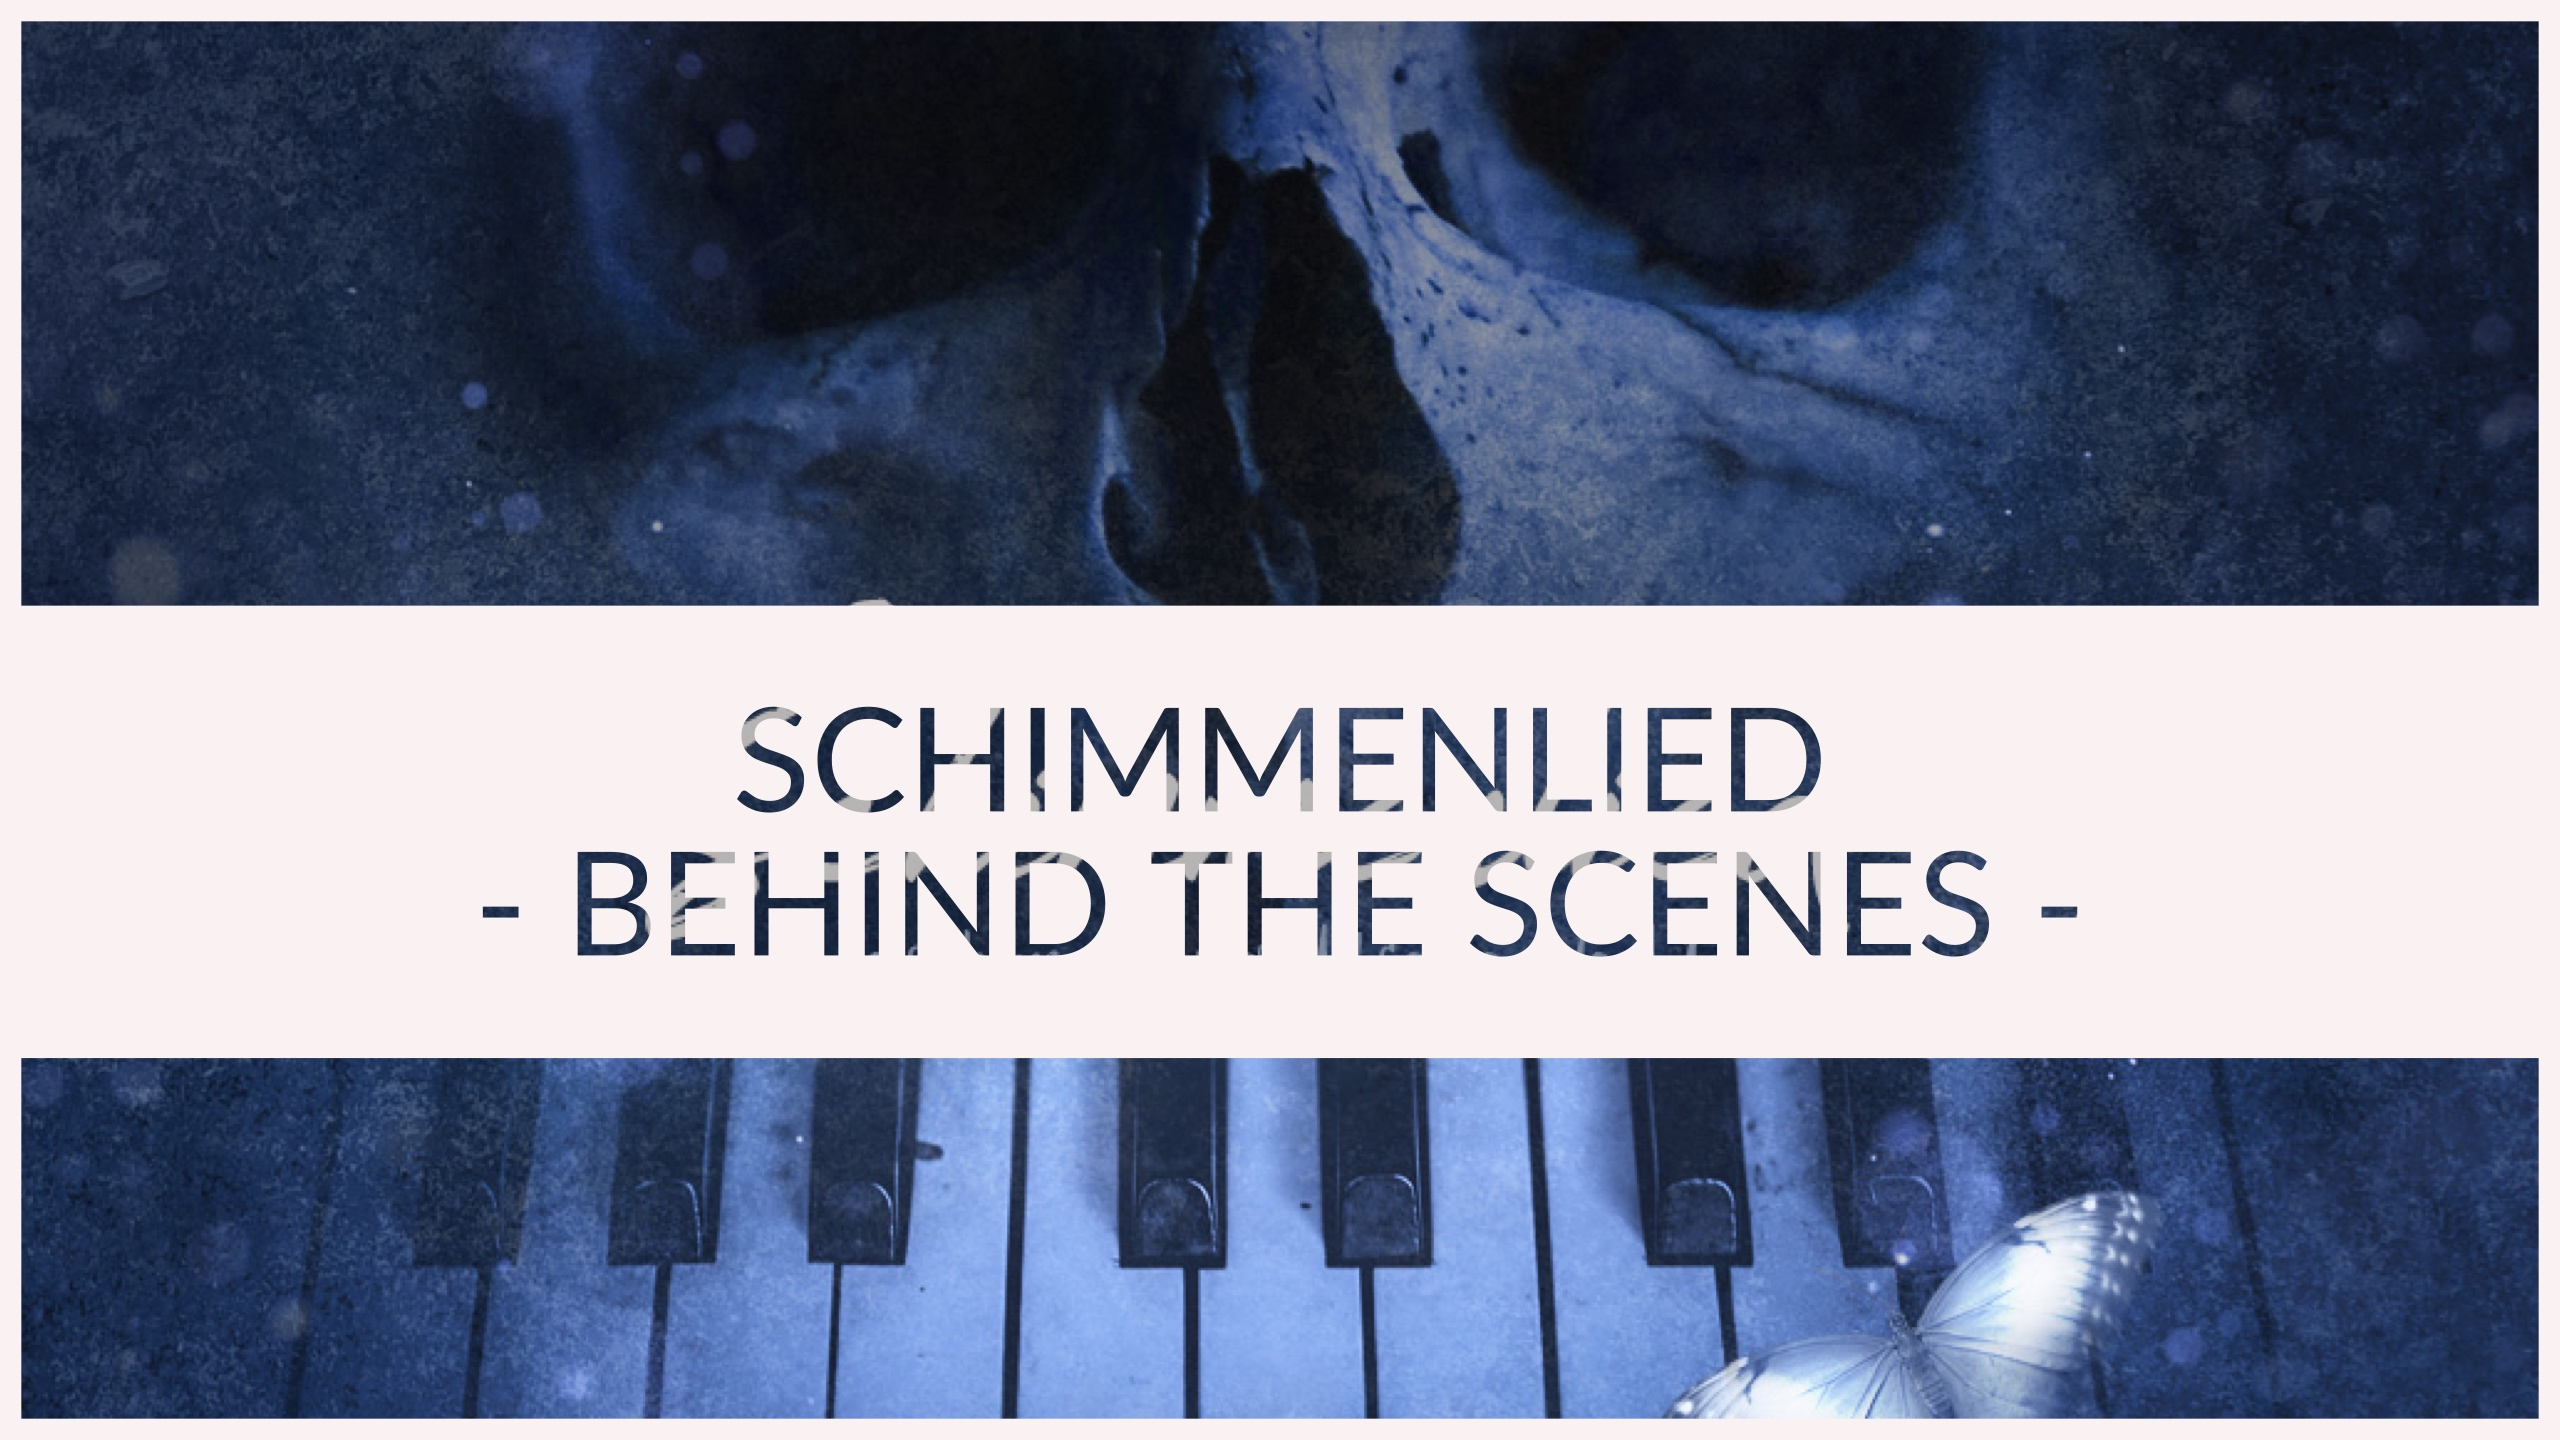 Schimmenlied BEHIND THE SCENES #2